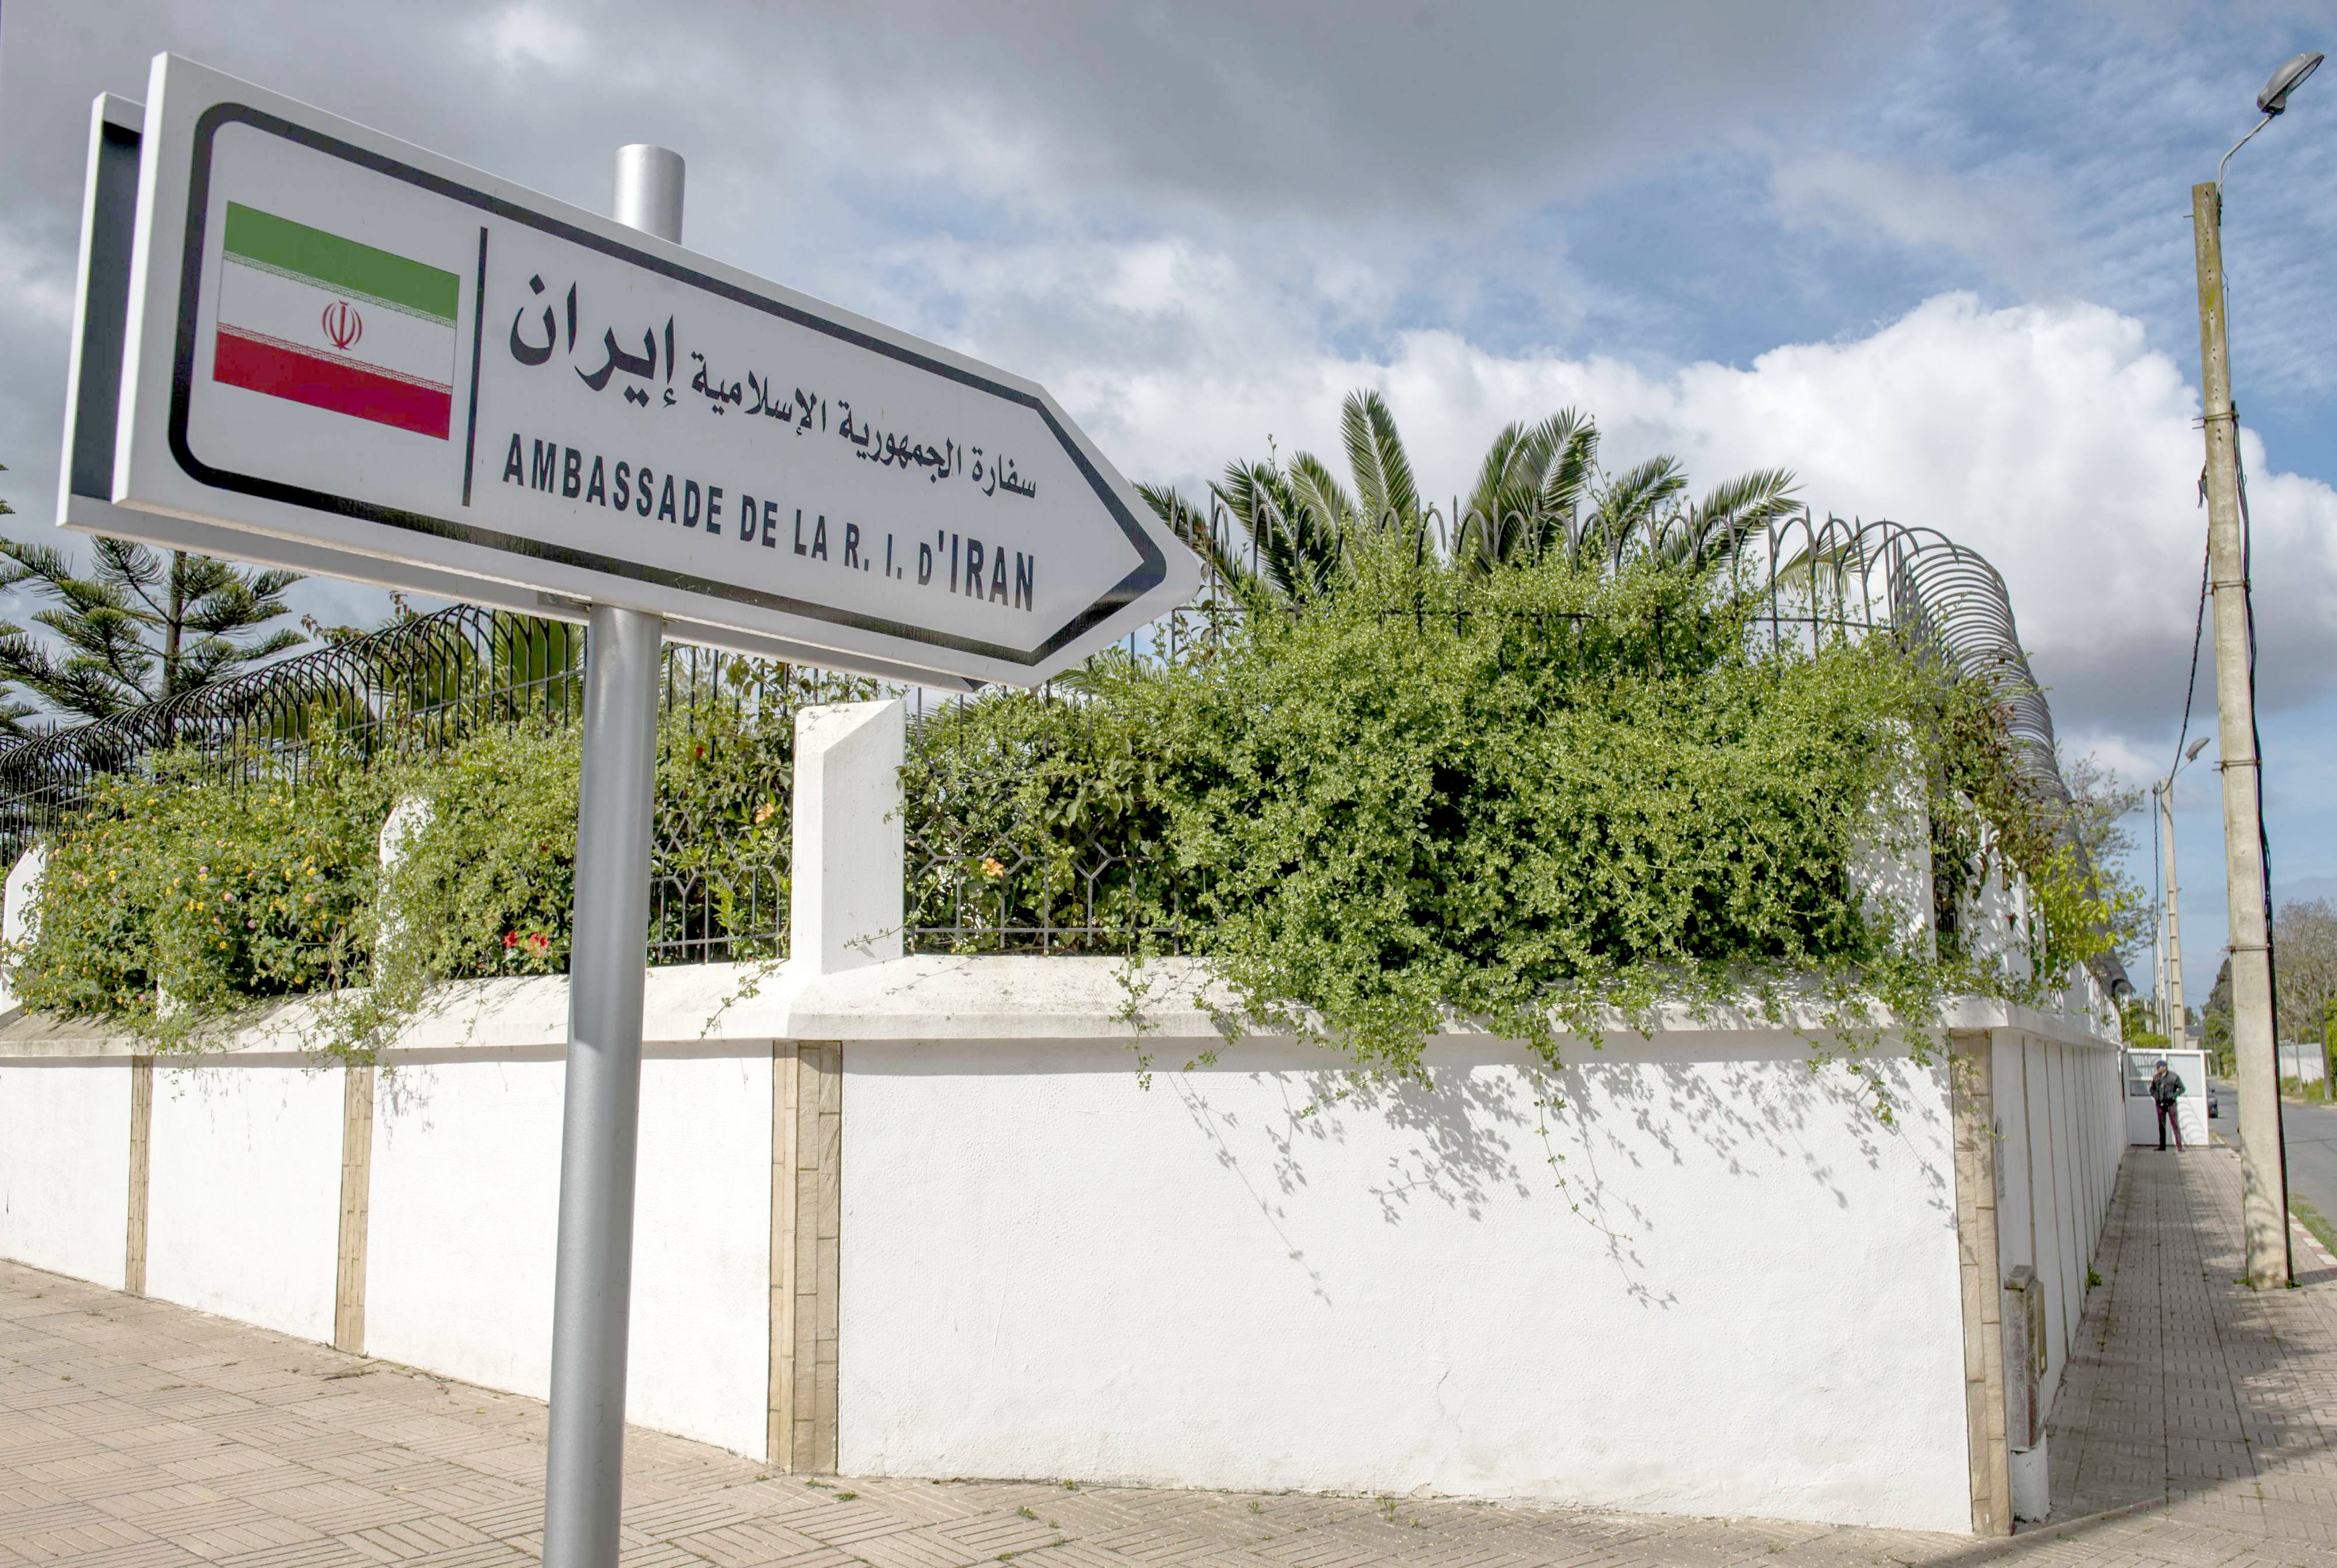 A sign indicating the way to the embassy of Iran in Rabat. (AFP)